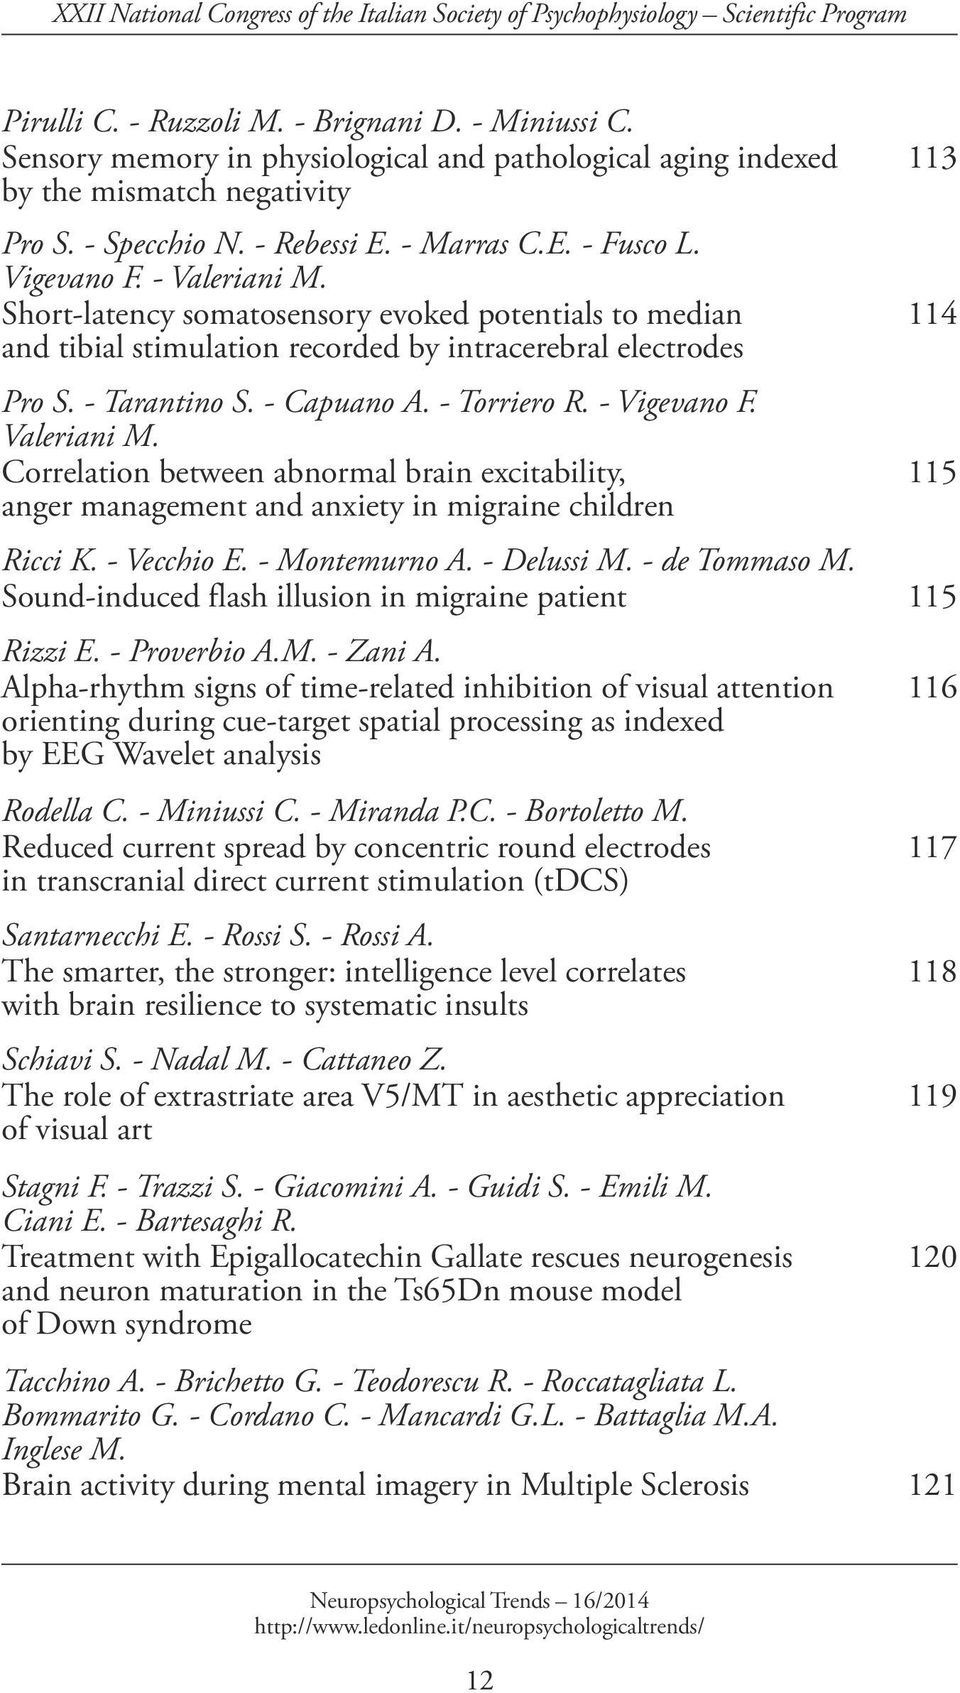 Short-latency somatosensory evoked potentials to median 114 and tibial stimulation recorded by intracerebral electrodes Pro S. - Tarantino S. - Capuano A. - Torriero R. - Vigevano F. Valeriani M.